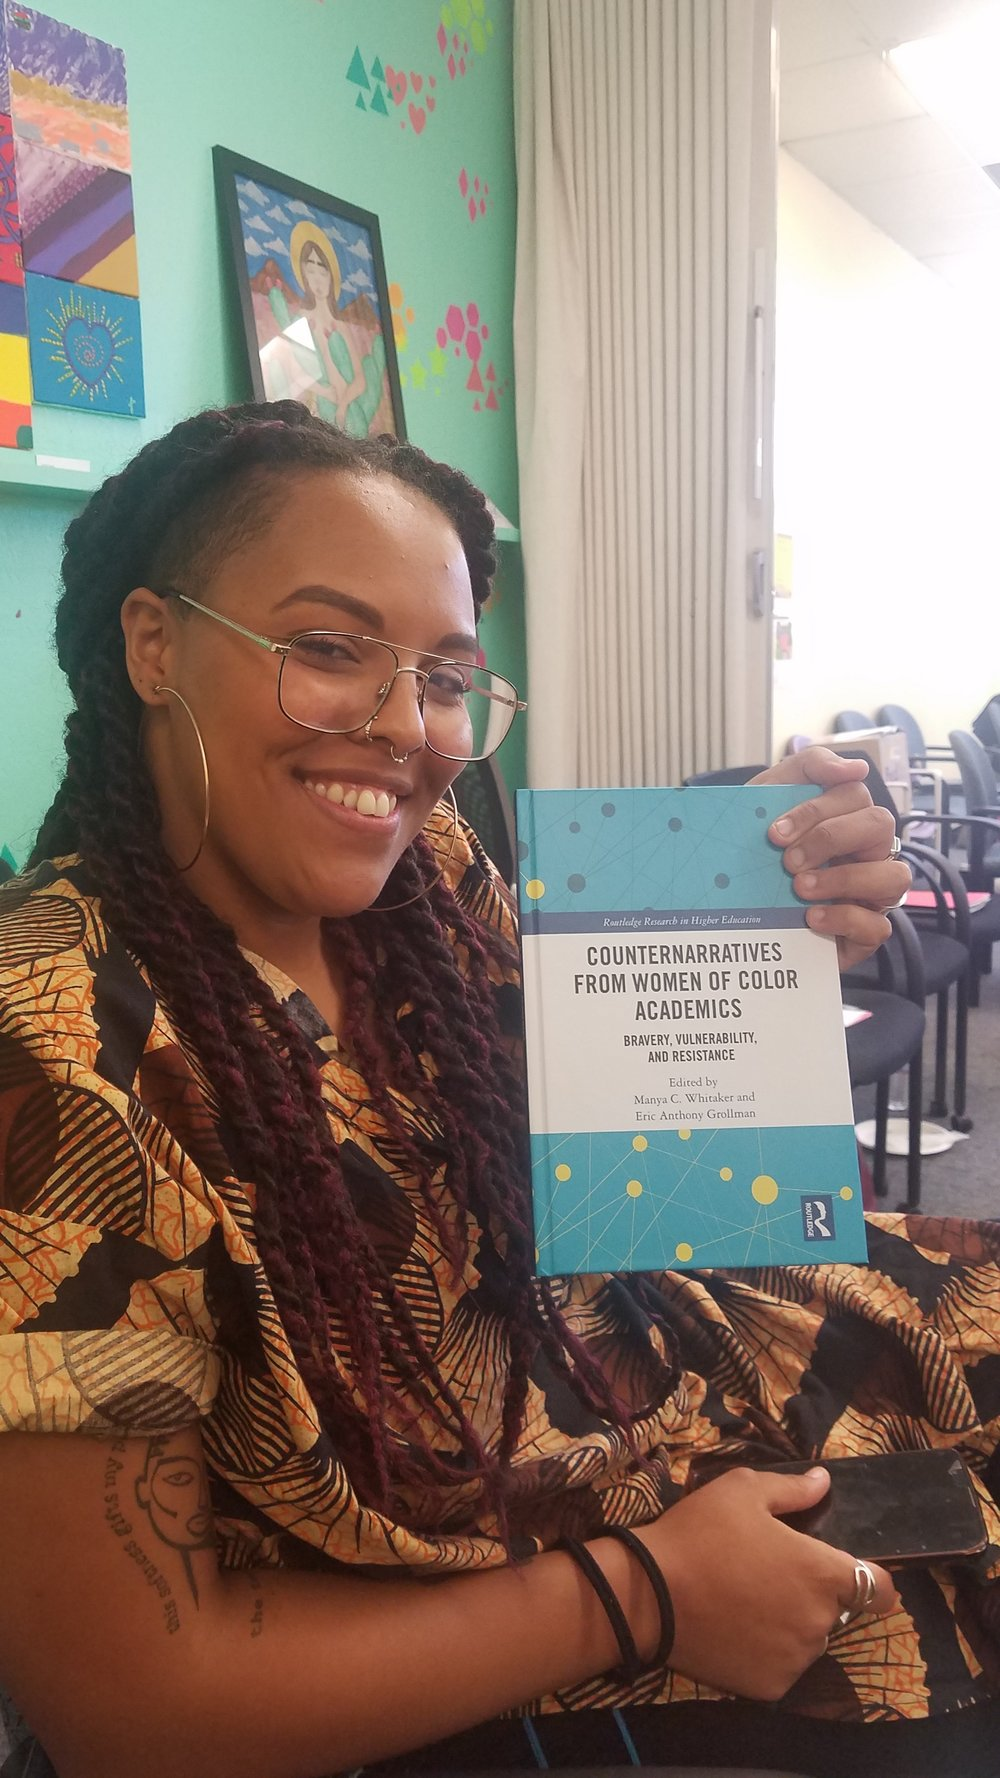 Shoutout to Aja on her First Poem Publication!